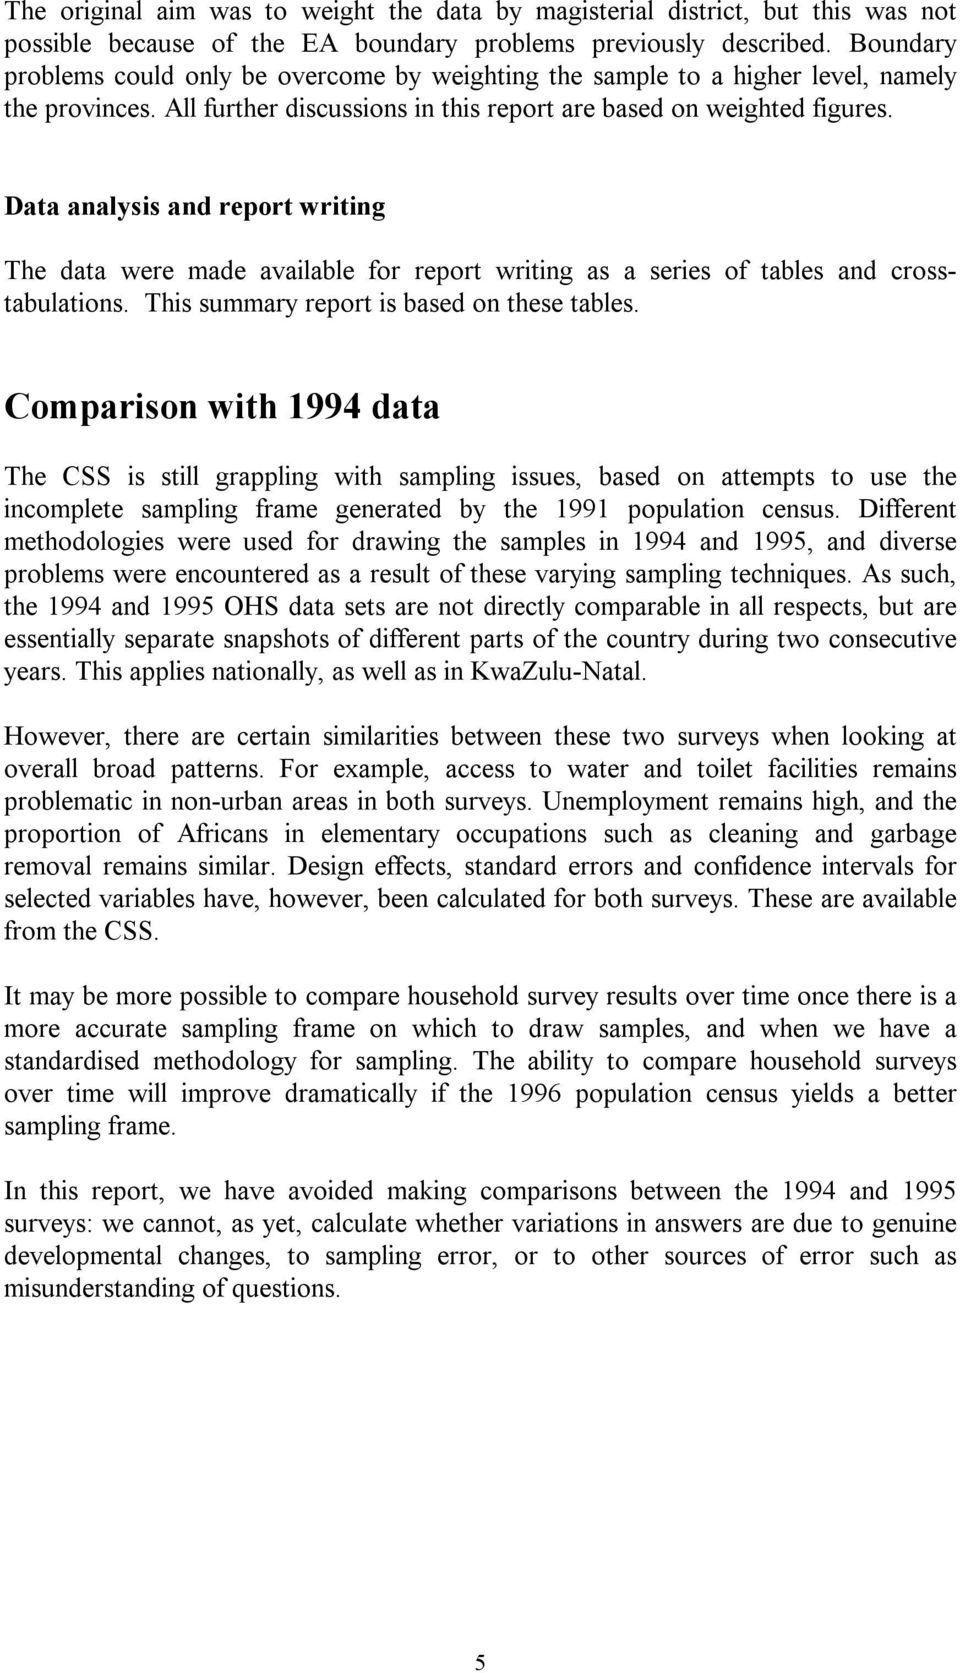 Data analysis and report writing The data were made available for report writing as a series of tables and crosstabulations. This summary report is based on these tables.